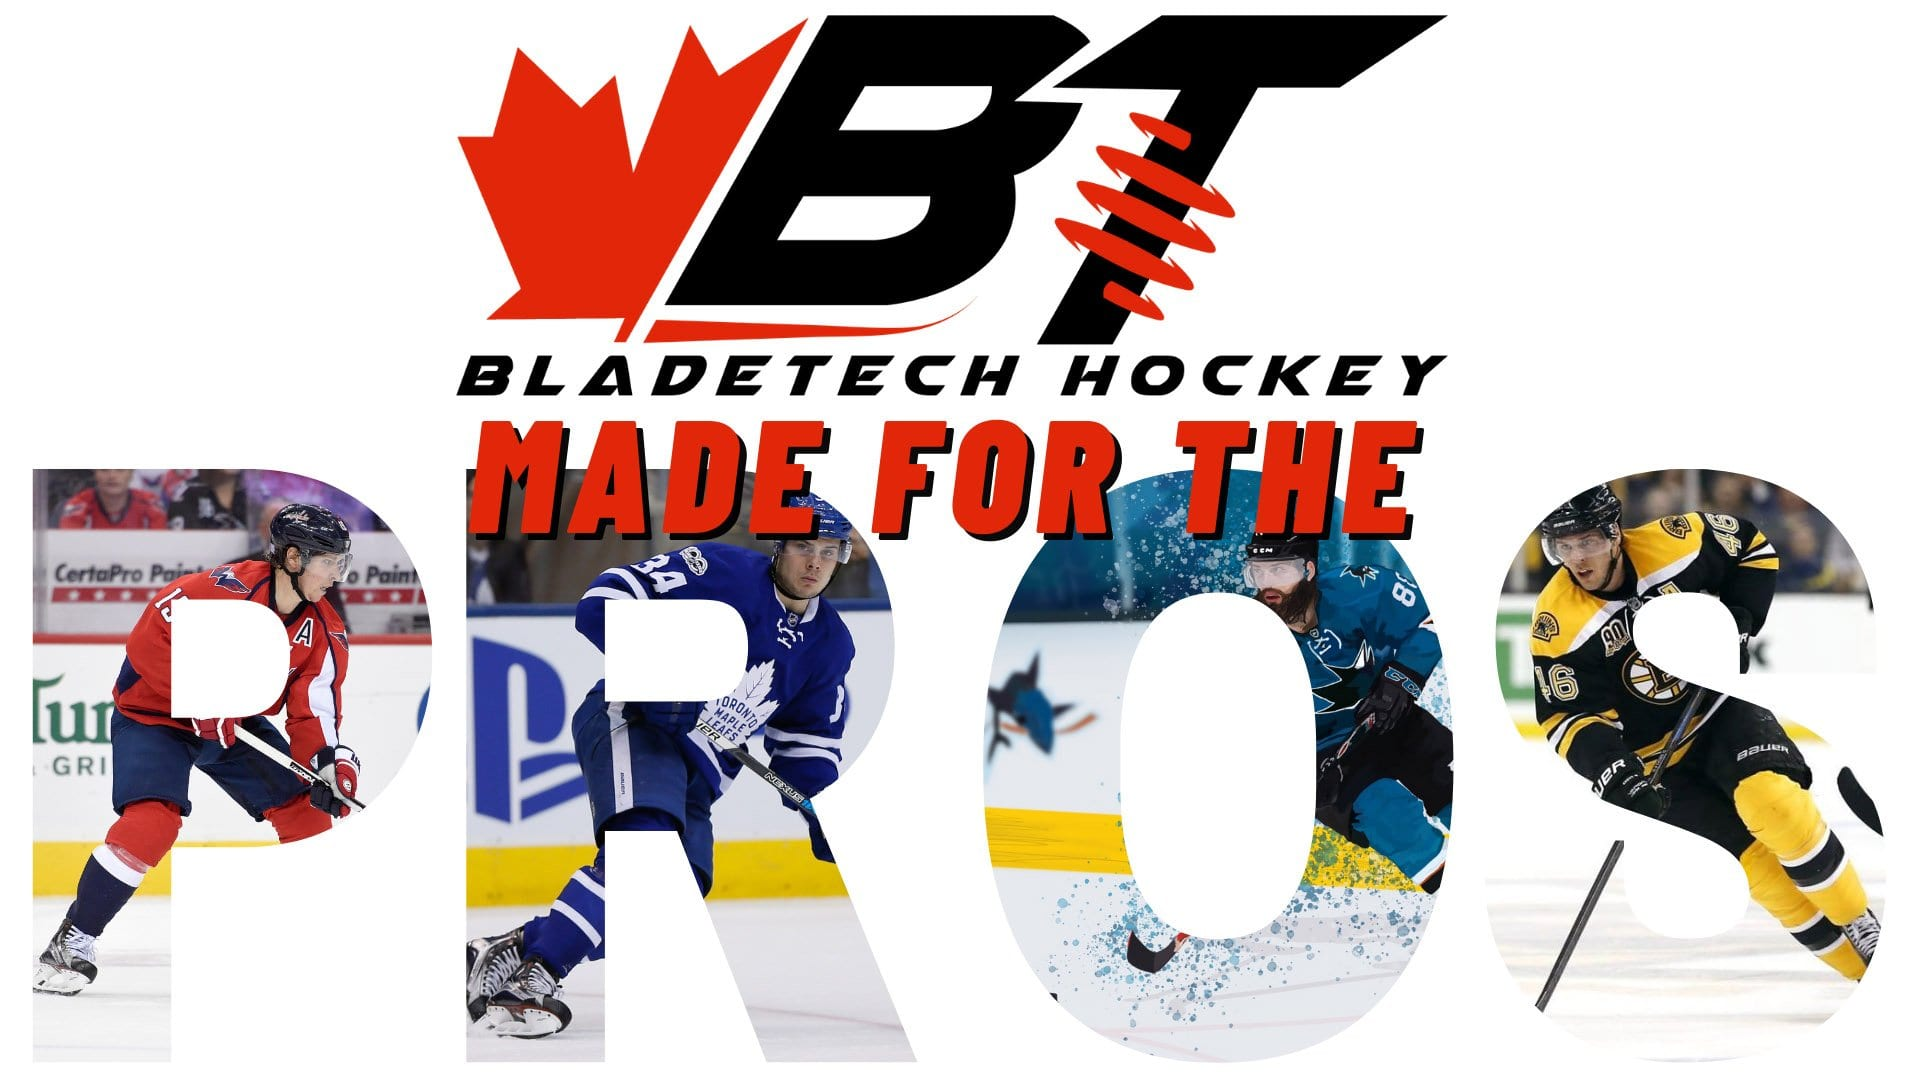 Bladetech Hockey professional players